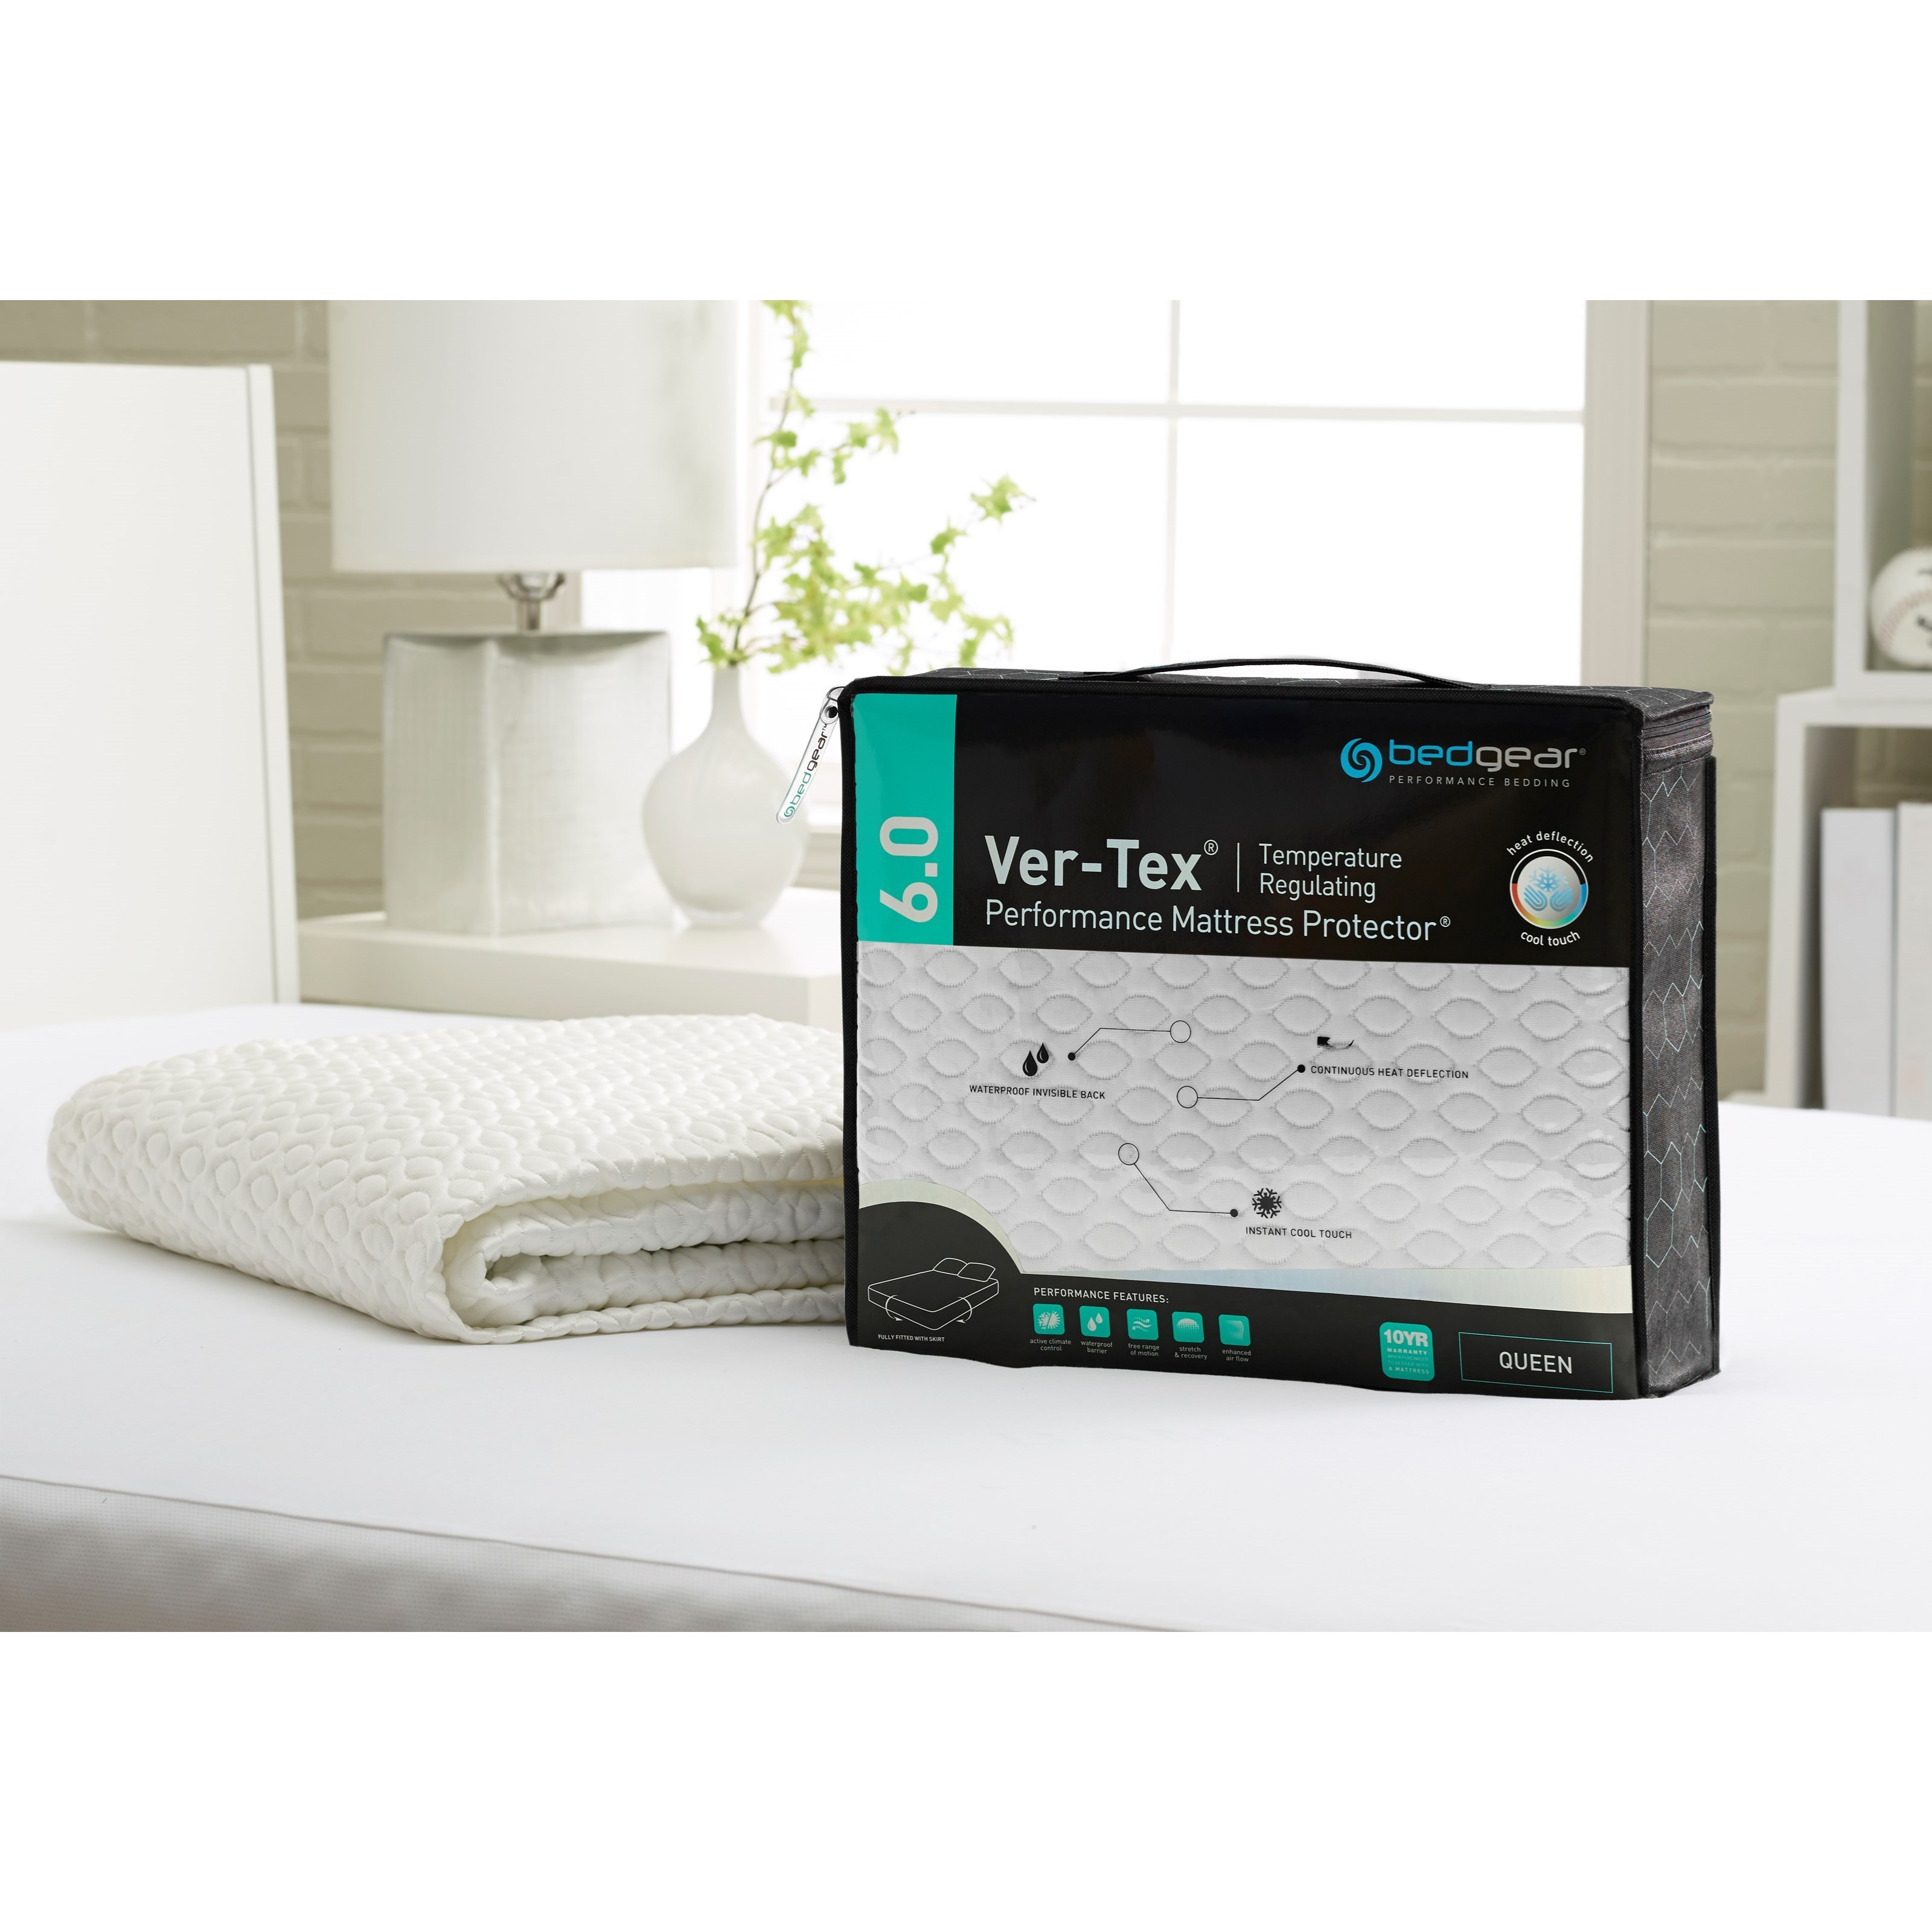 Ver-Tex® Cal King  6.0 Ver-Tex® Mattress Protector by Bedgear at Darvin Furniture